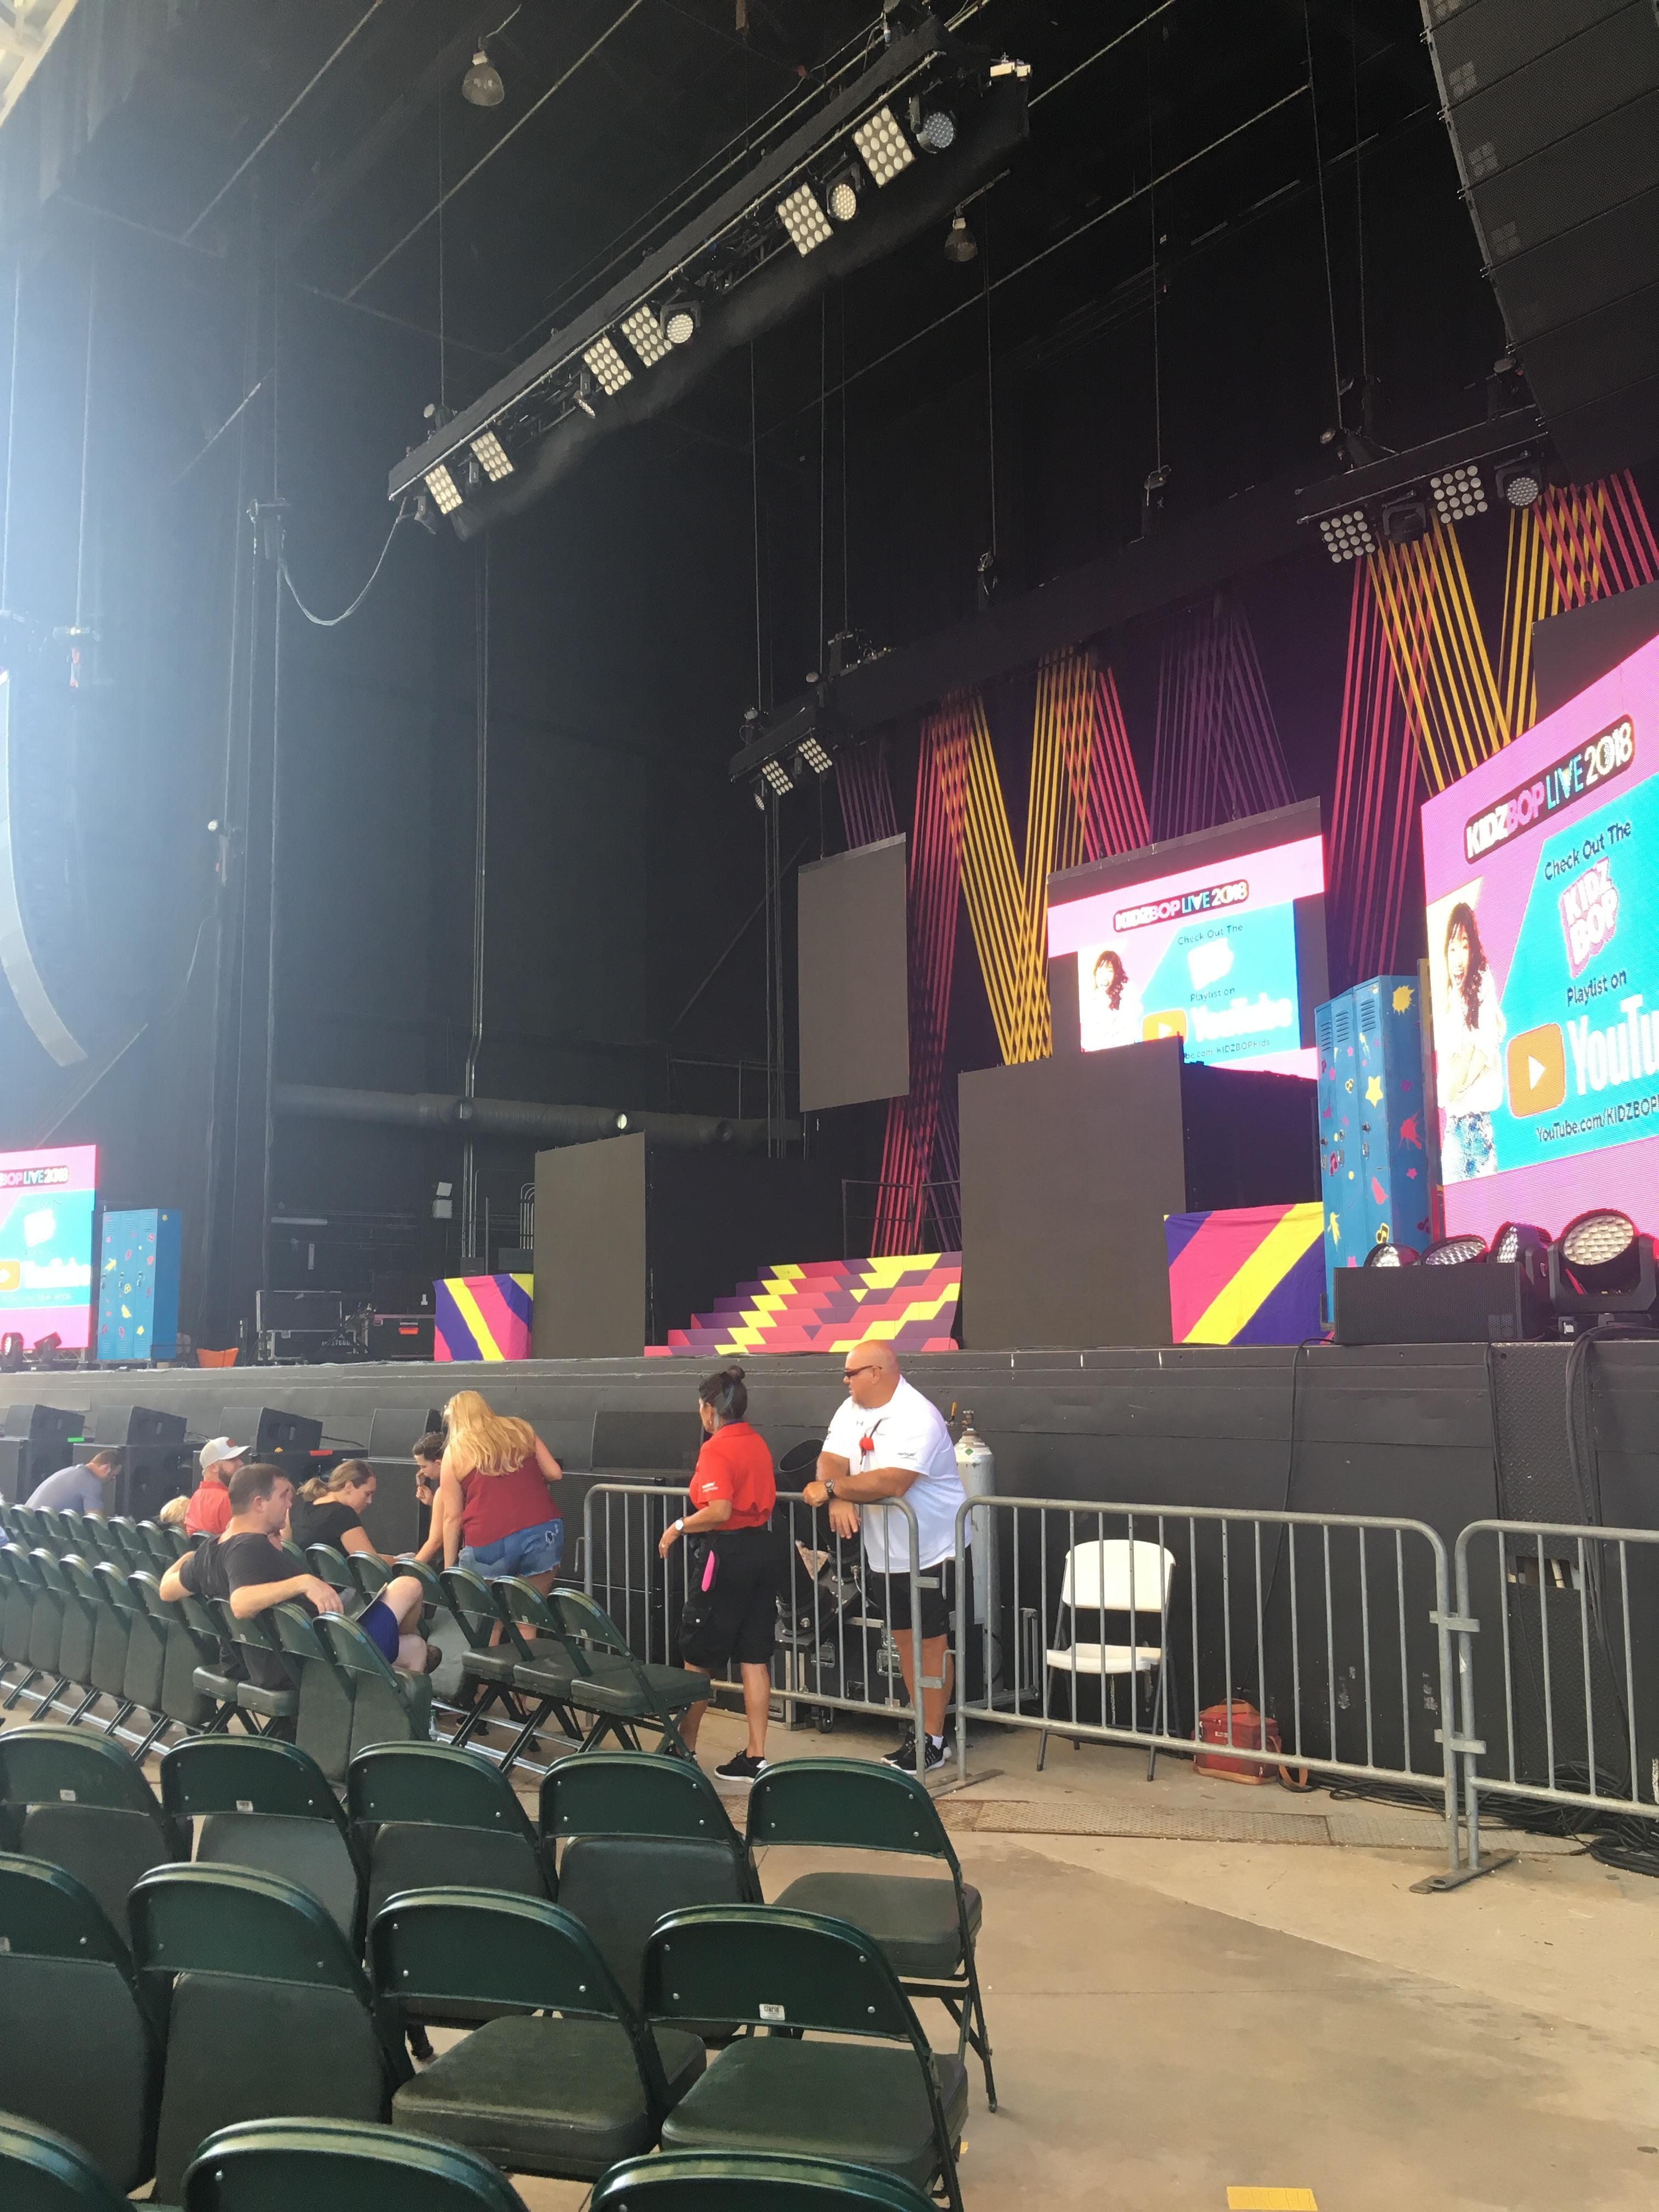 Ameris Bank Amphitheatre Section ORCH 1 Row F Seat 1